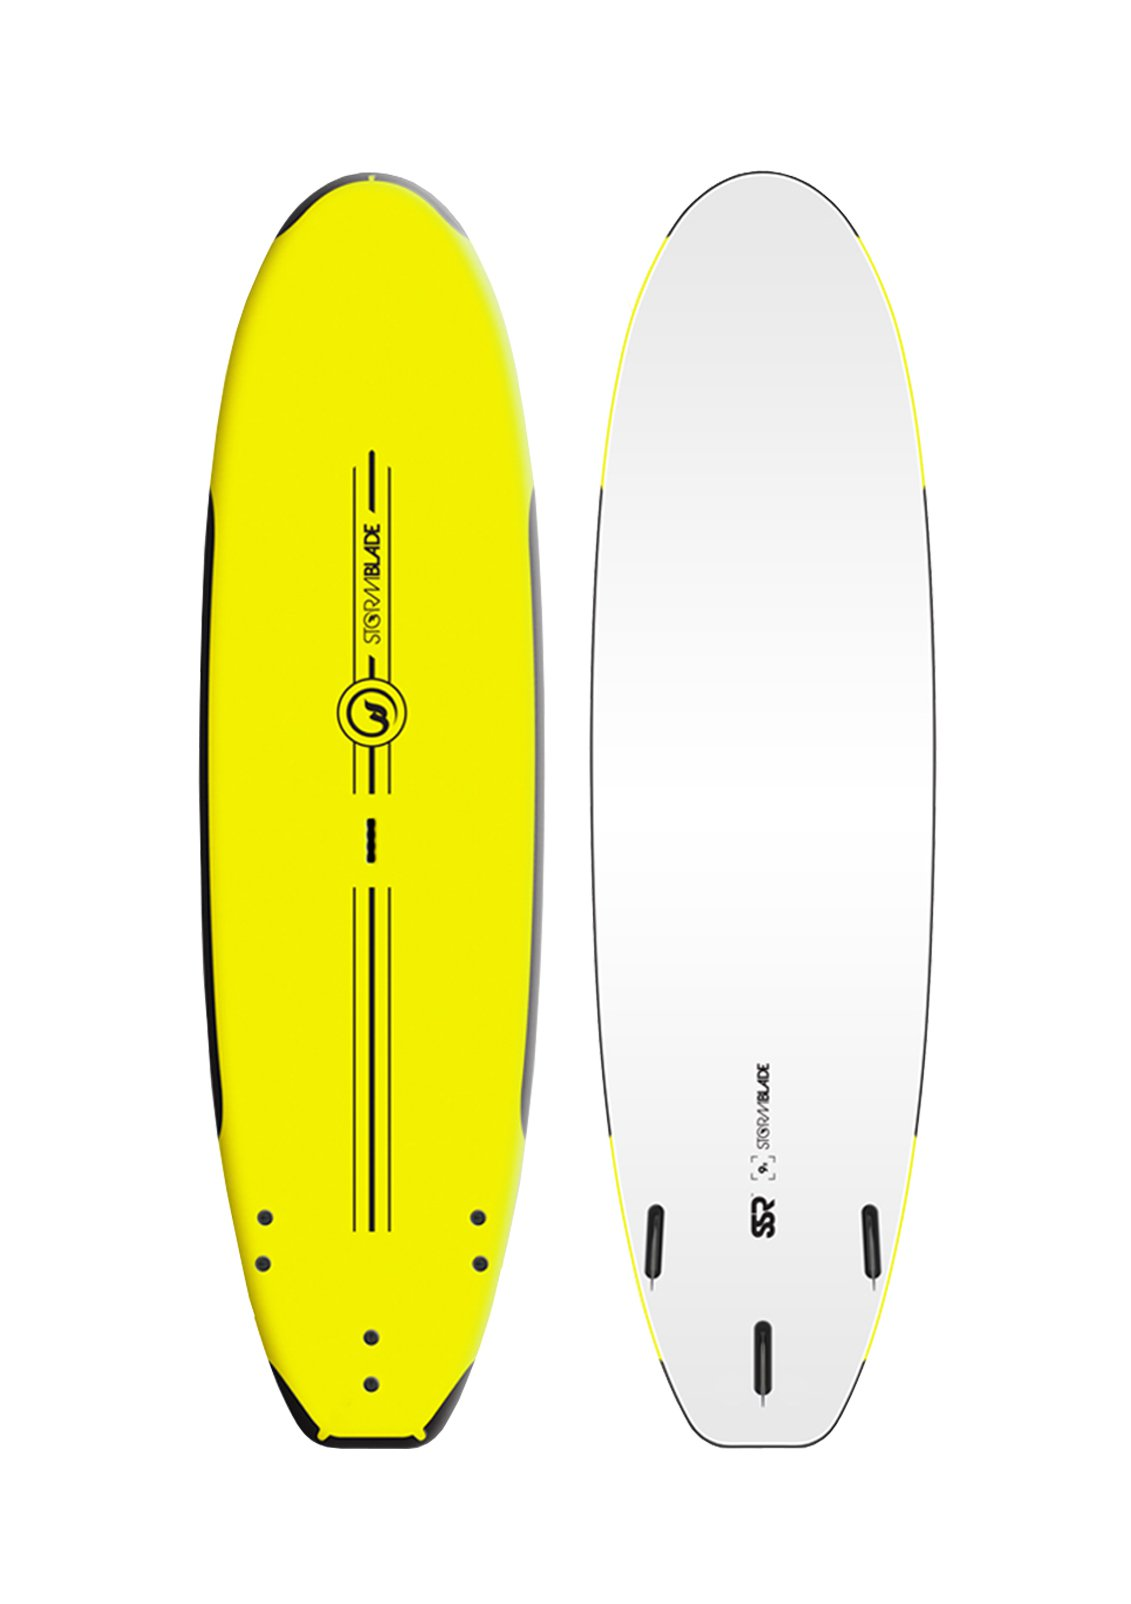 Storm Blade SSR Soft Top Surfboard Yellow